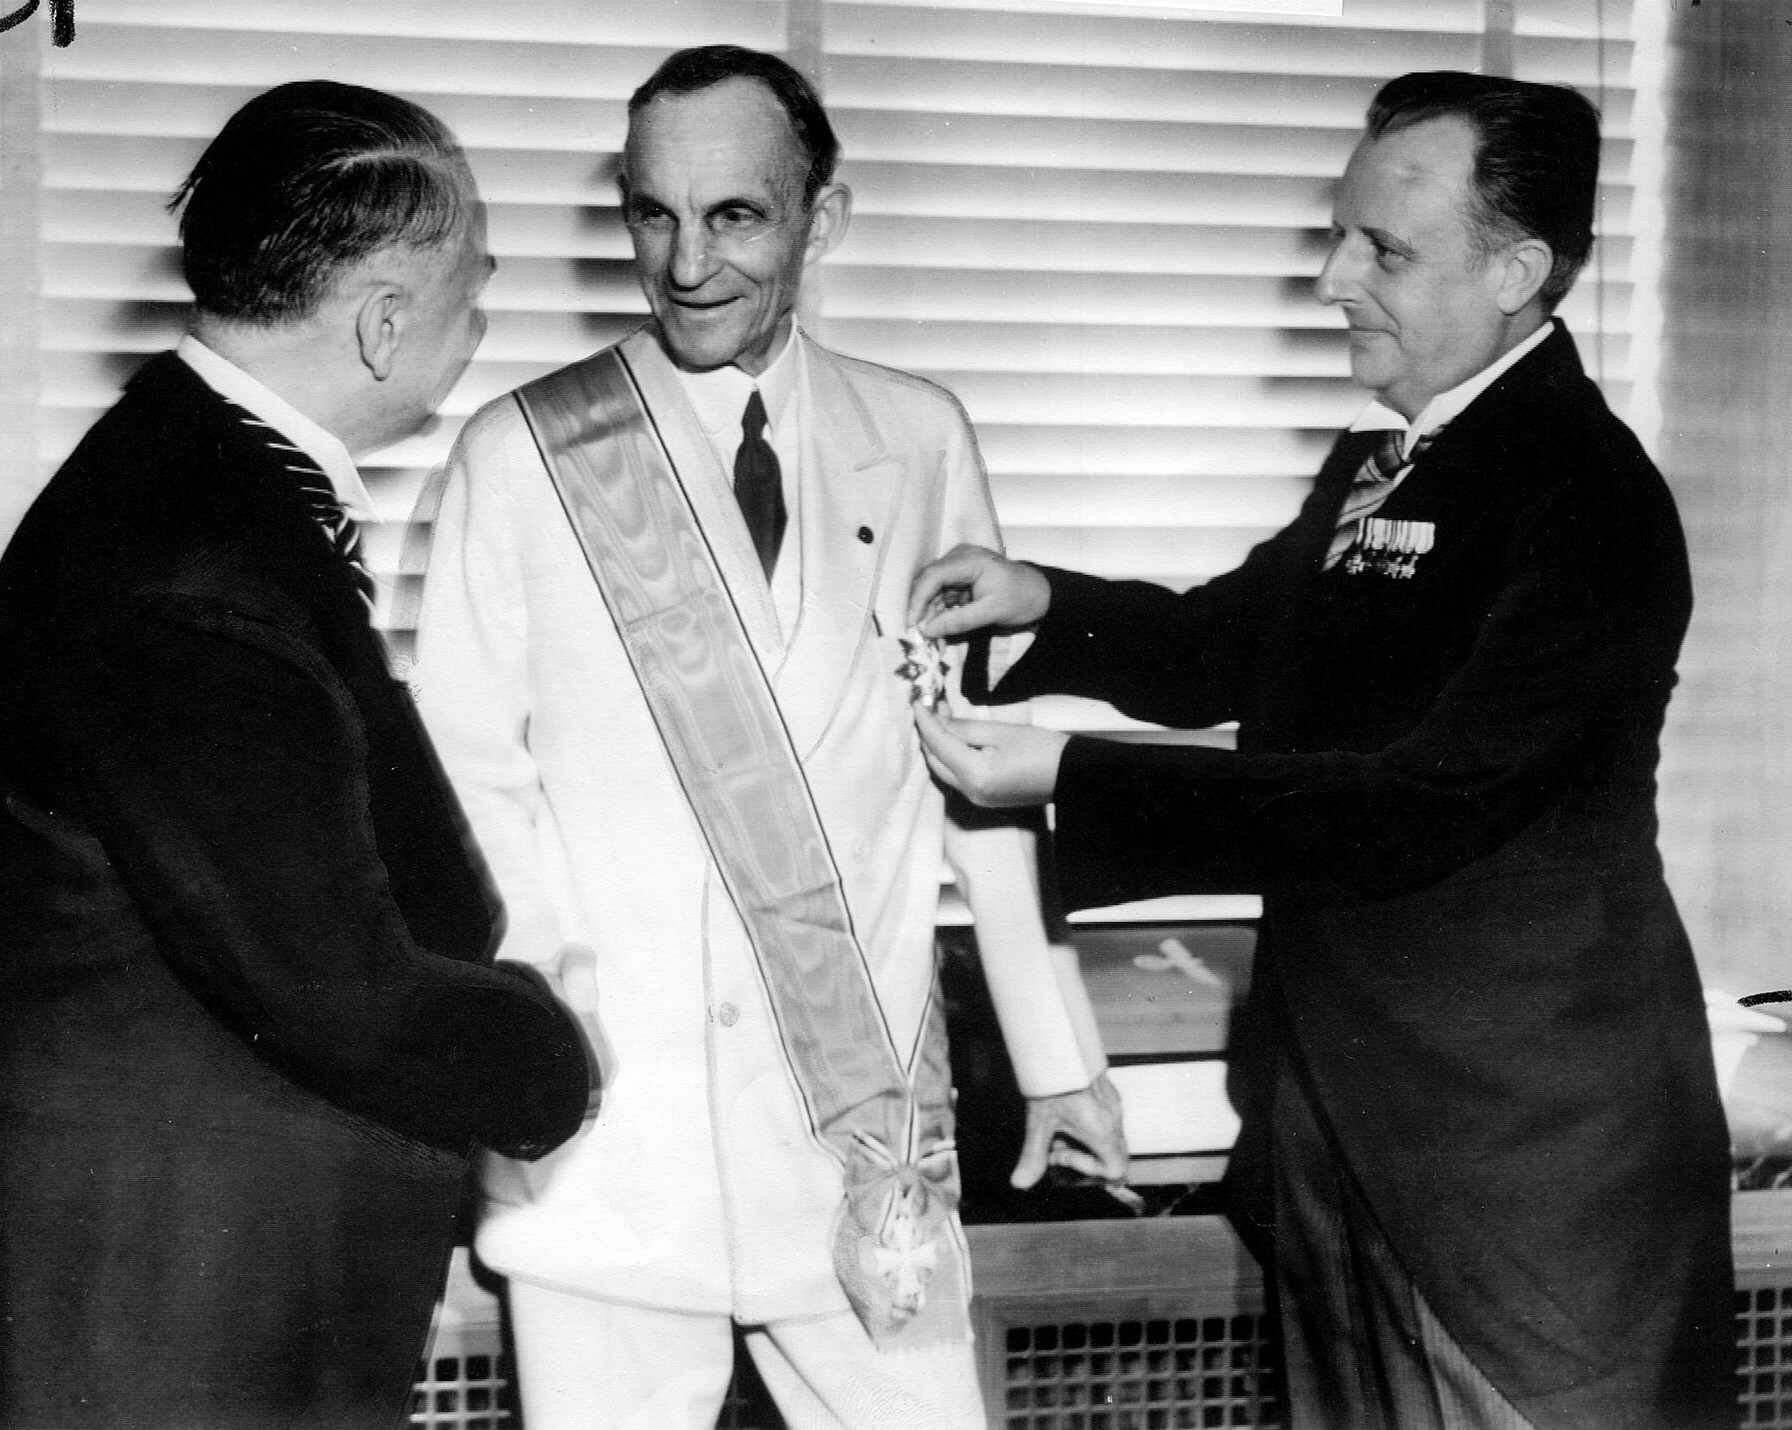 German diplomats award Henry Ford, center, Nazi Germany's highest decoration for foreigners, The Grand Cross of the German Eagle, in Detroit for his service to the Third Reich.